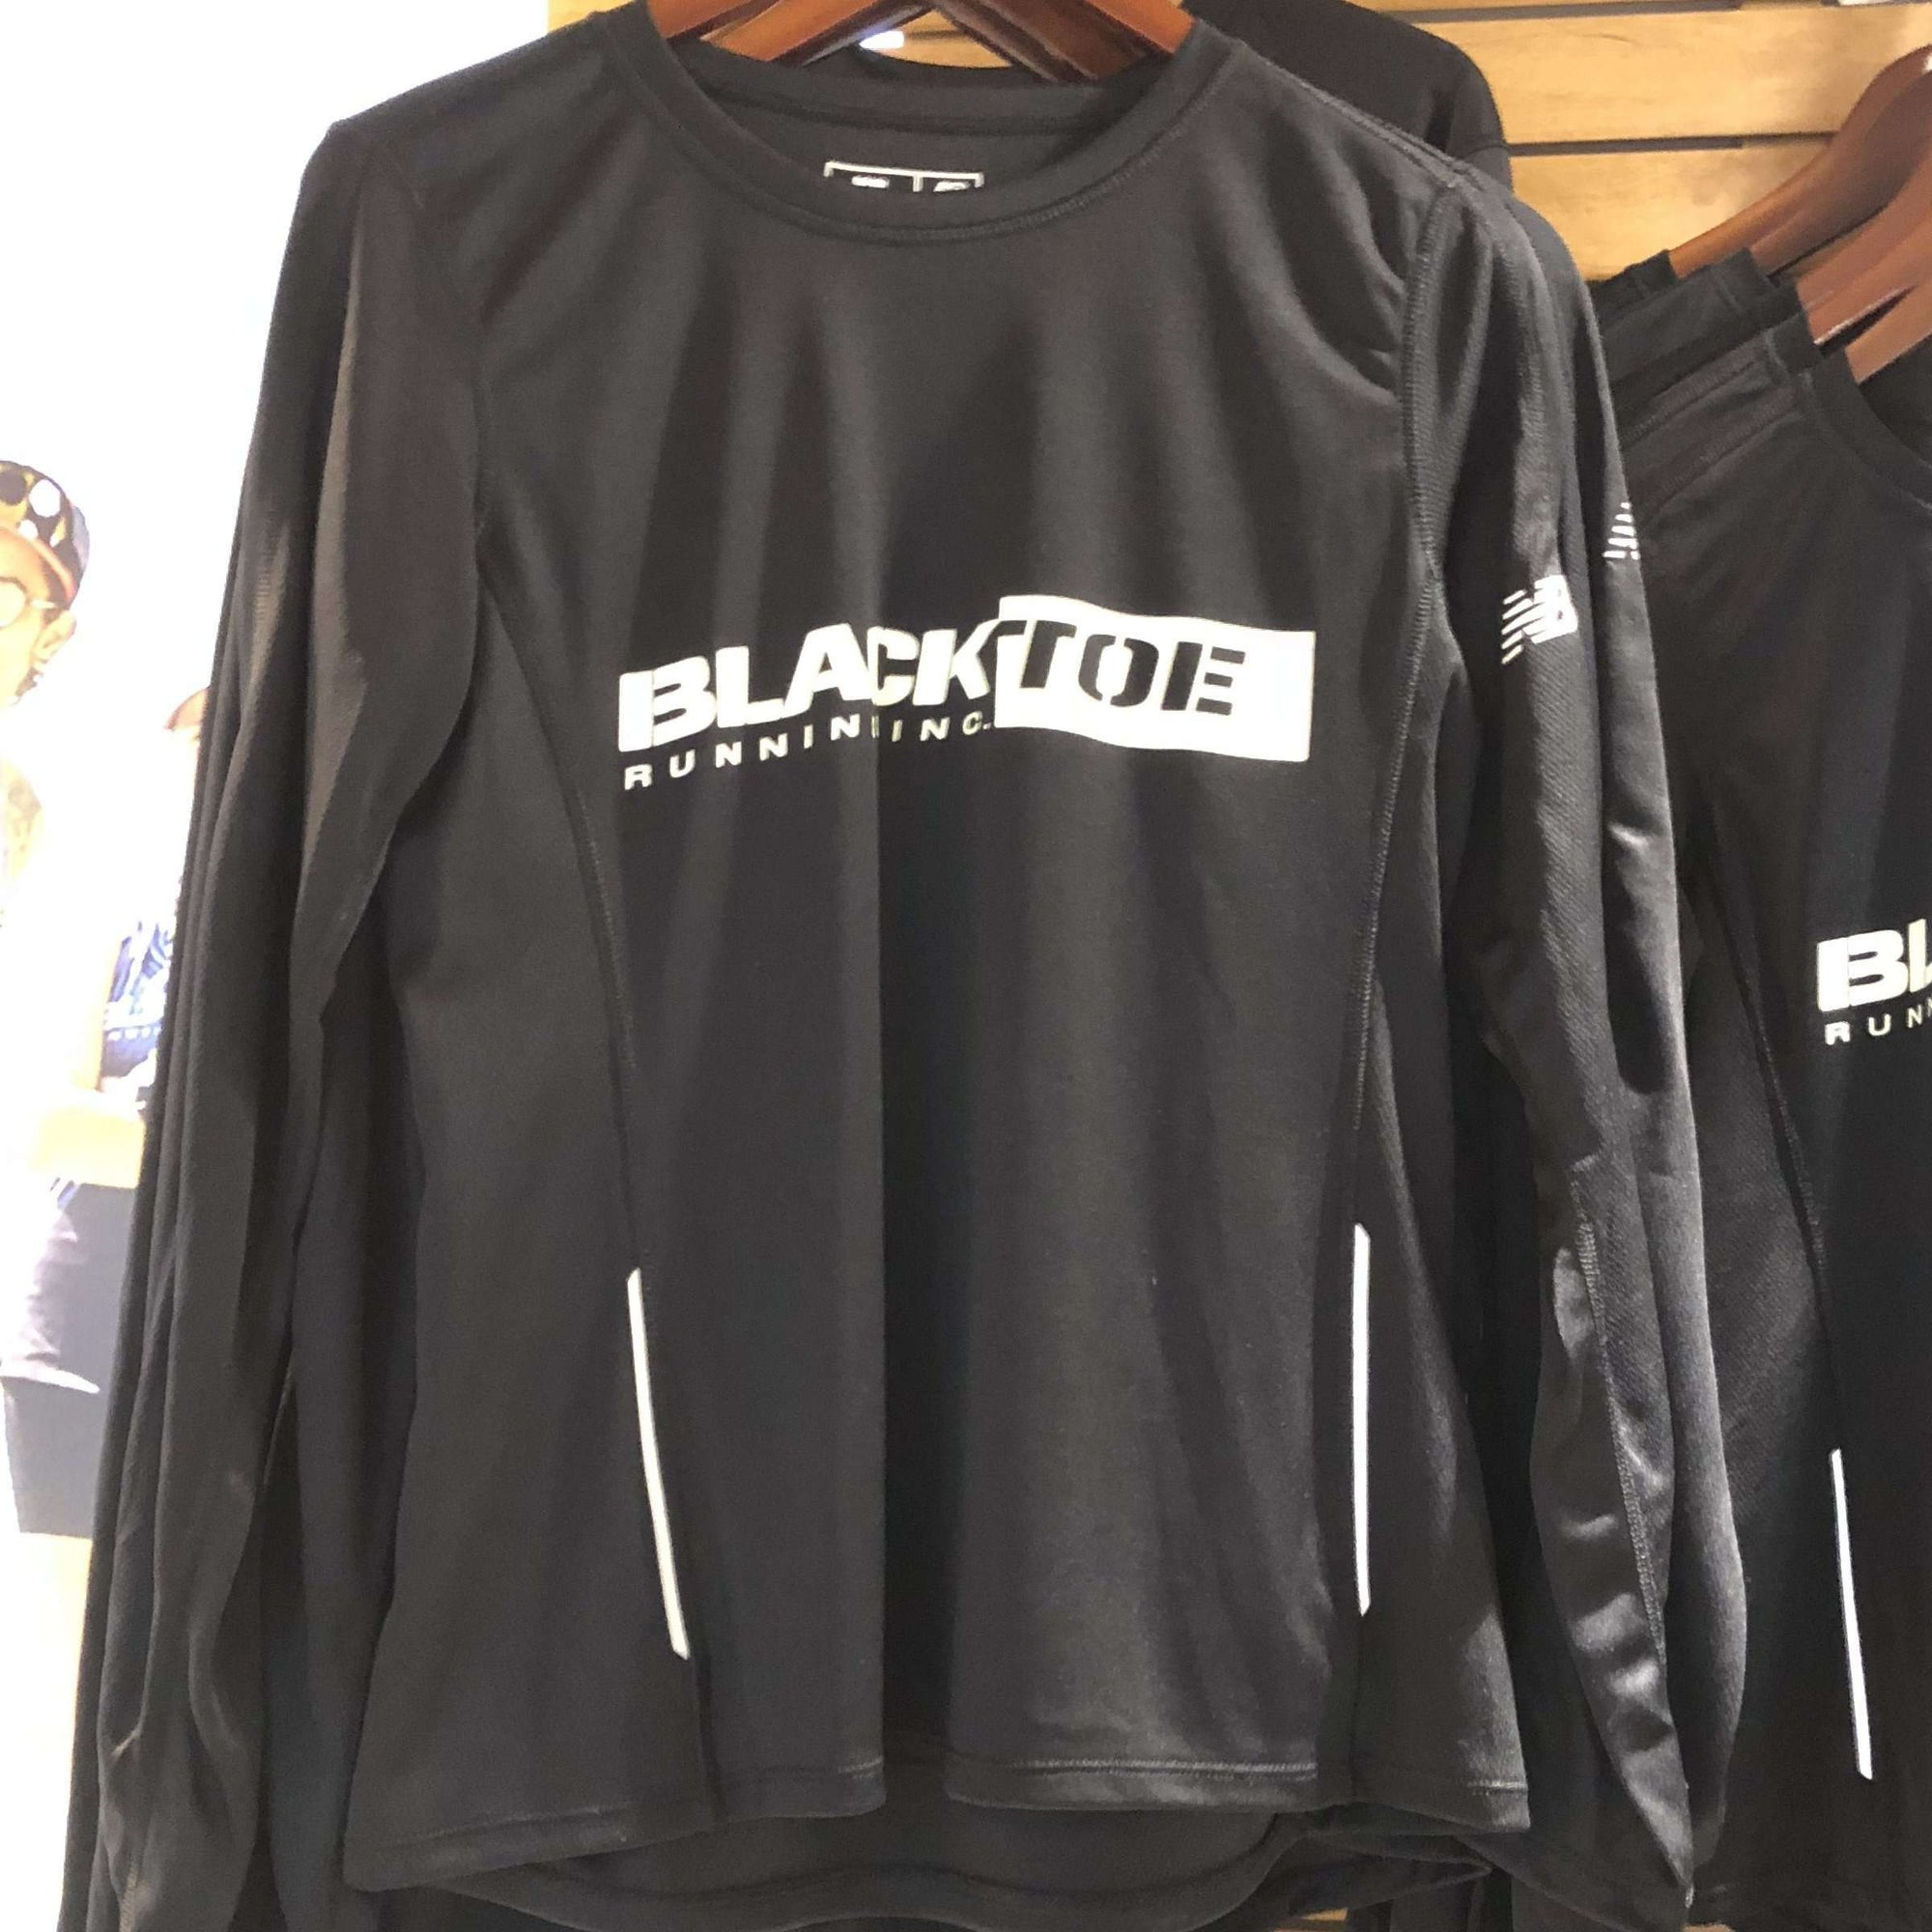 BlackToe Men's NB Long Sleeve Shirt - BlackToe Running Inc. - Toronto Running Specialty Store